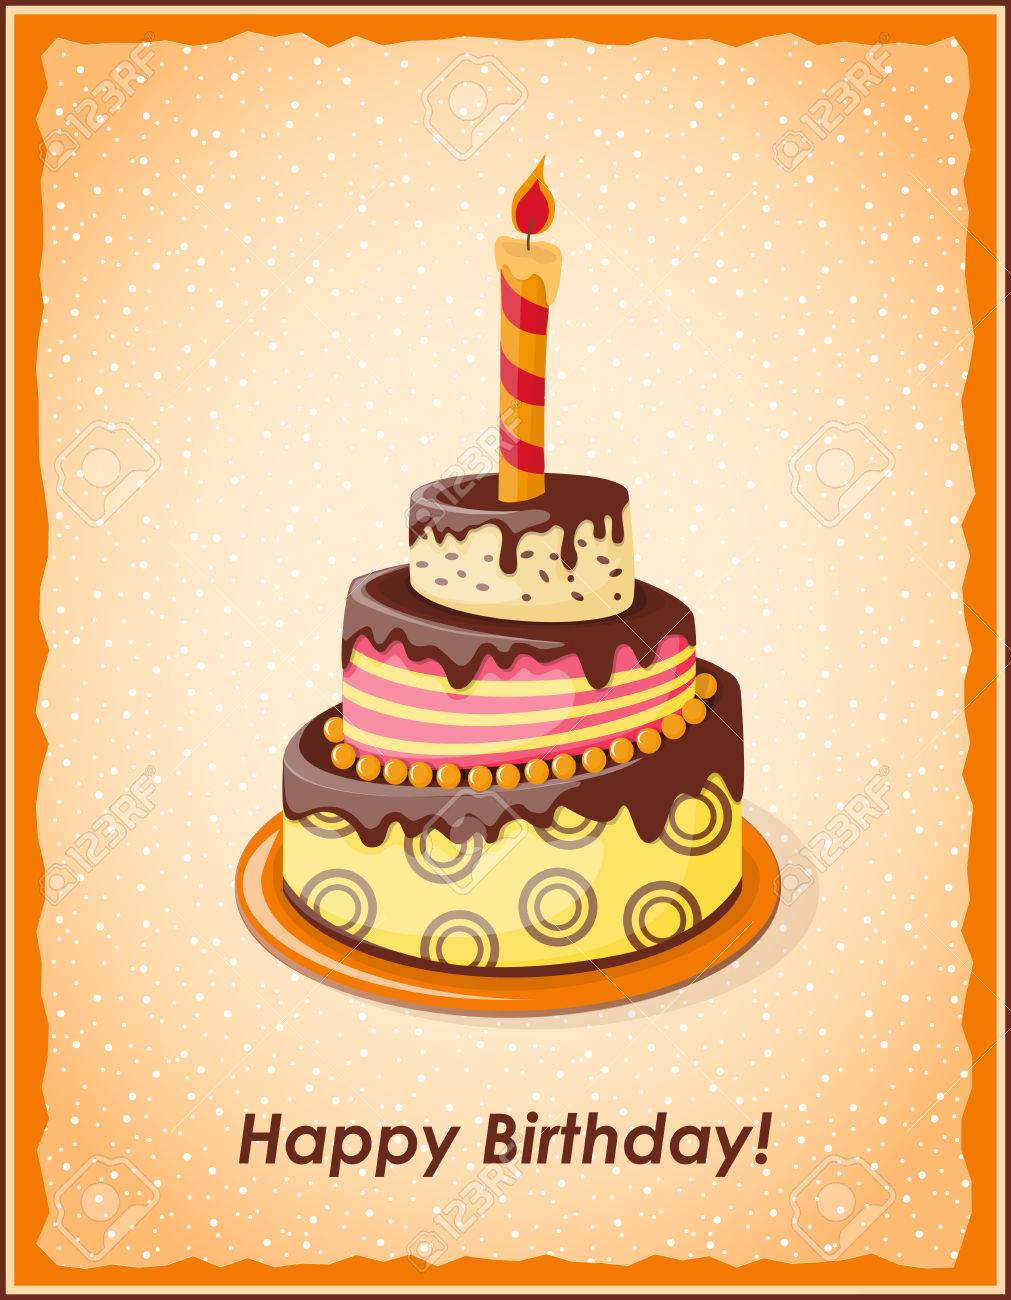 Festive Colorful Card With Text Happy Birthday Cake Tier Candle